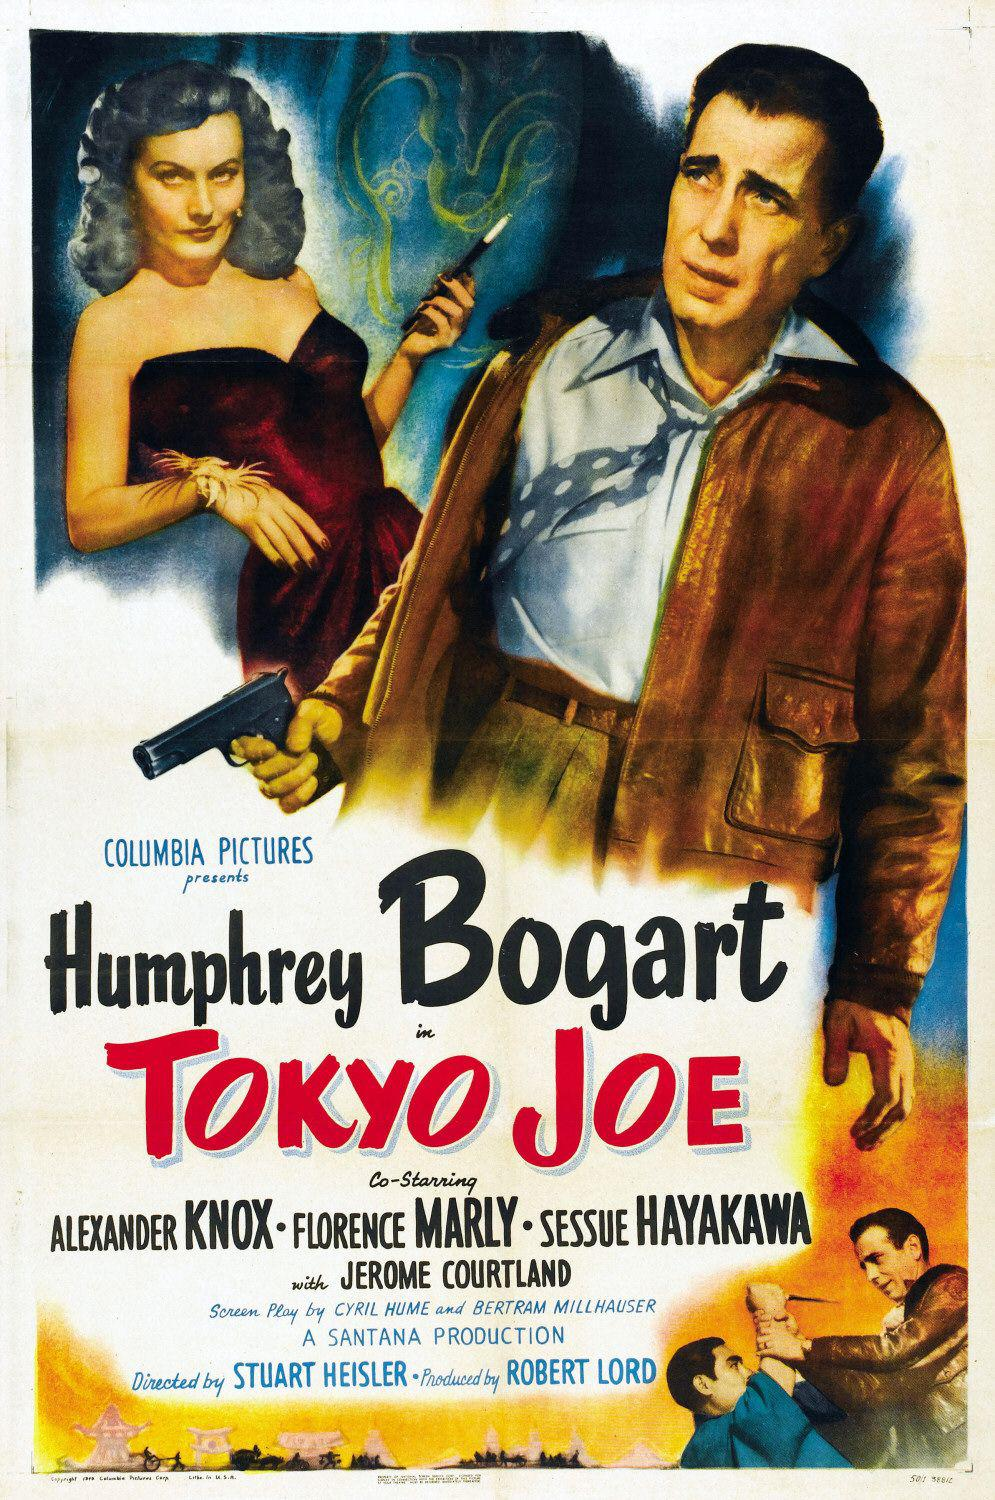 Tokyo Joe - most dangerous adventure of his Career - Humphrey Bogart - Alexander Knox - Florence Marly - Sessue Hayakama - Jerome Courtland